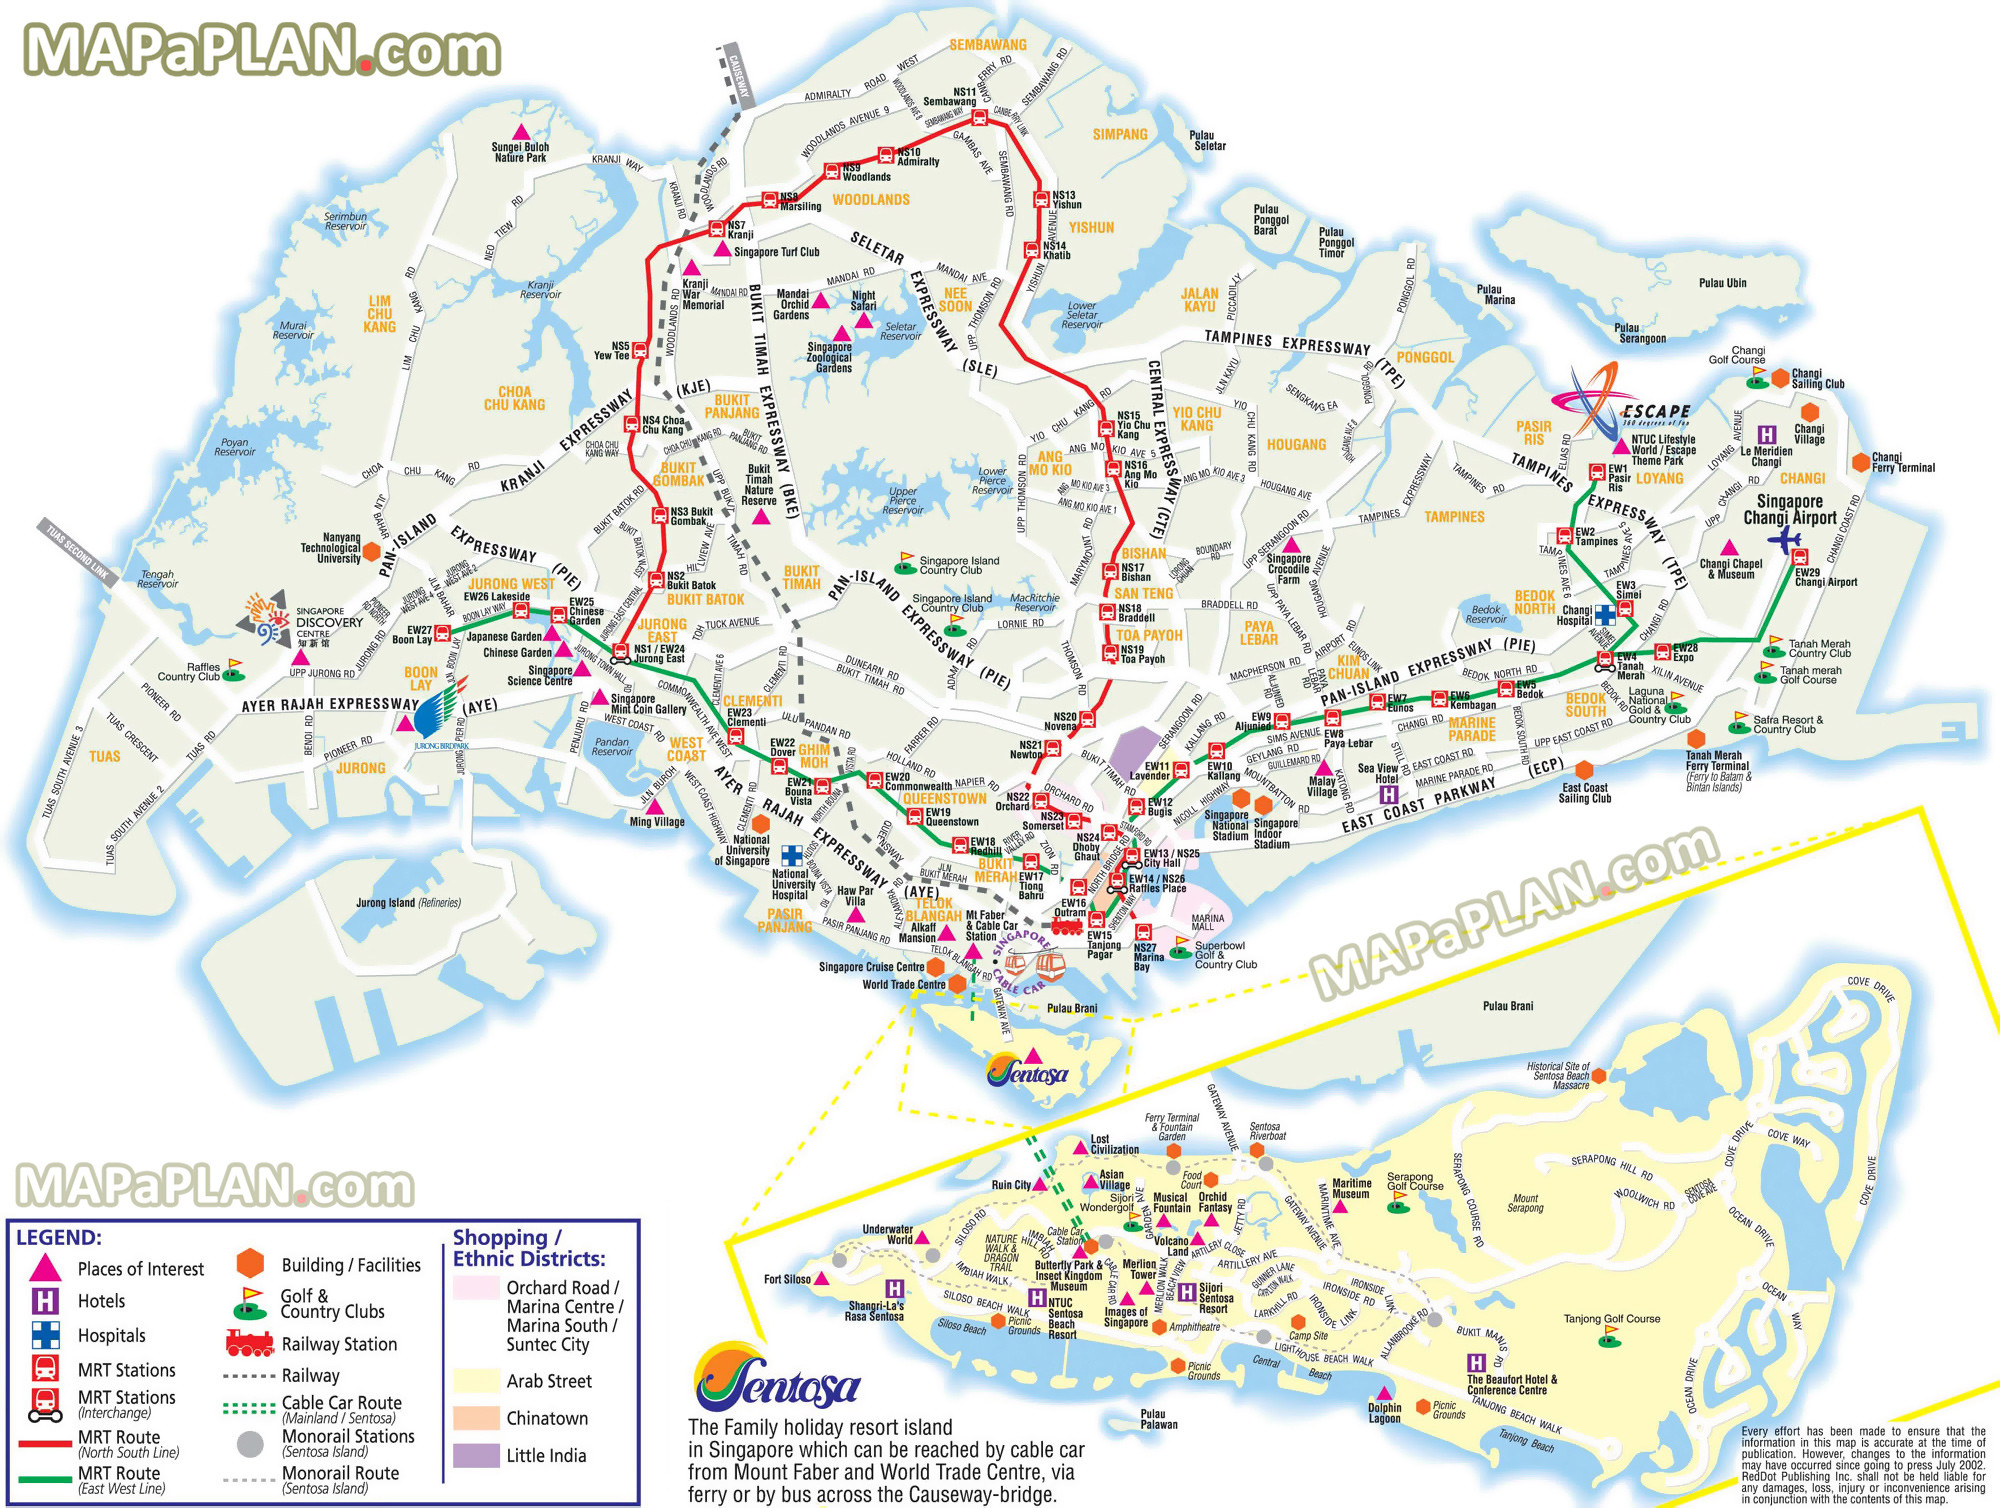 Printable Map Barcelona City Centre Fresh Singapore Maps top tourist attractions Free Printable City